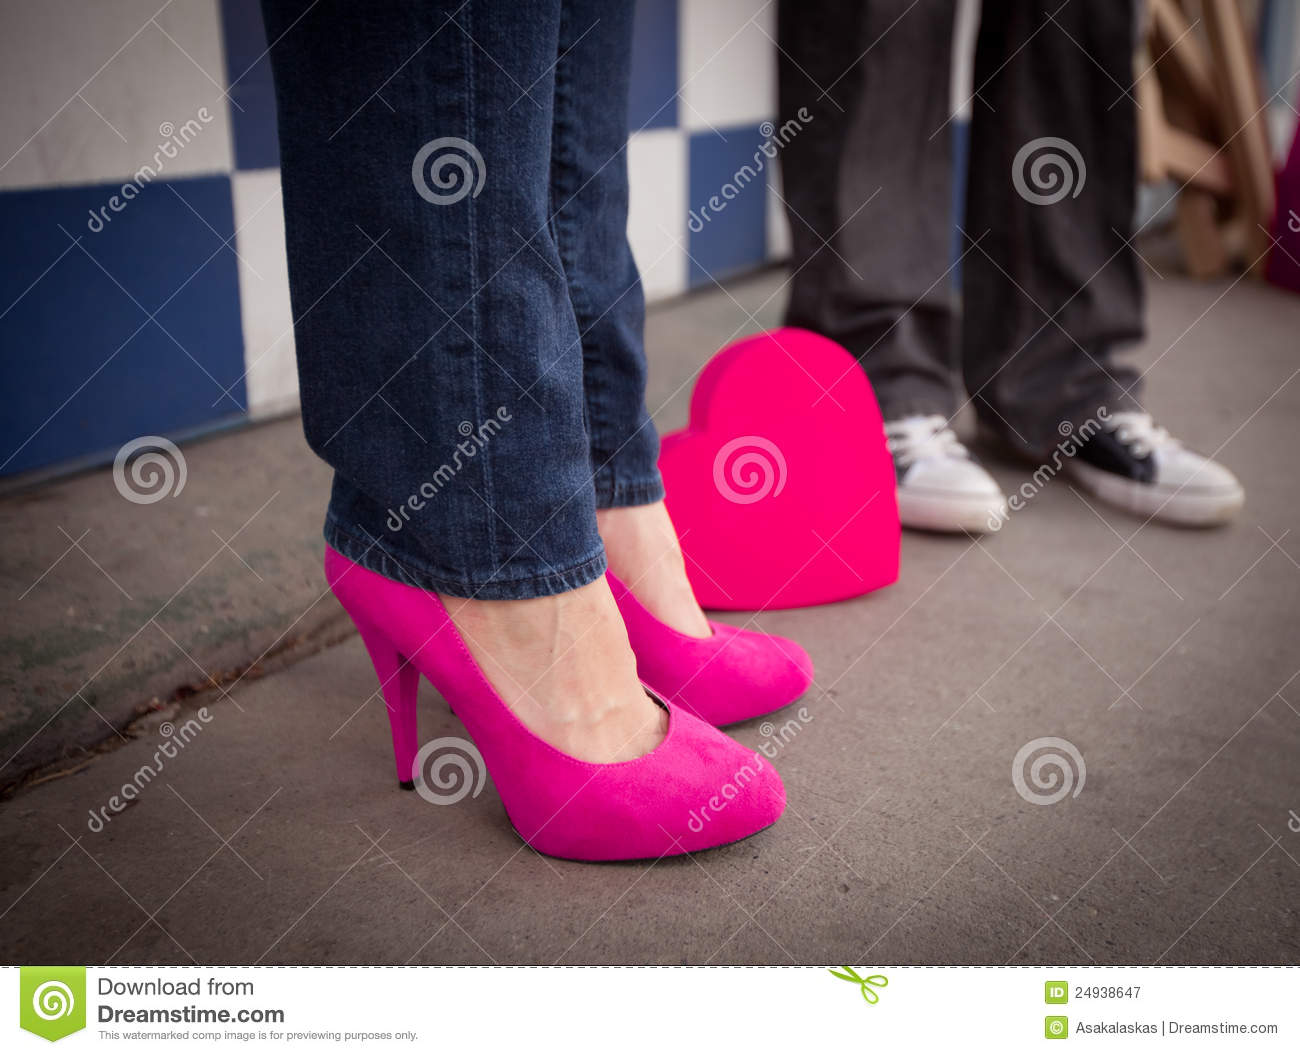 Cerise Pink High Heel Shoes - Is Heel